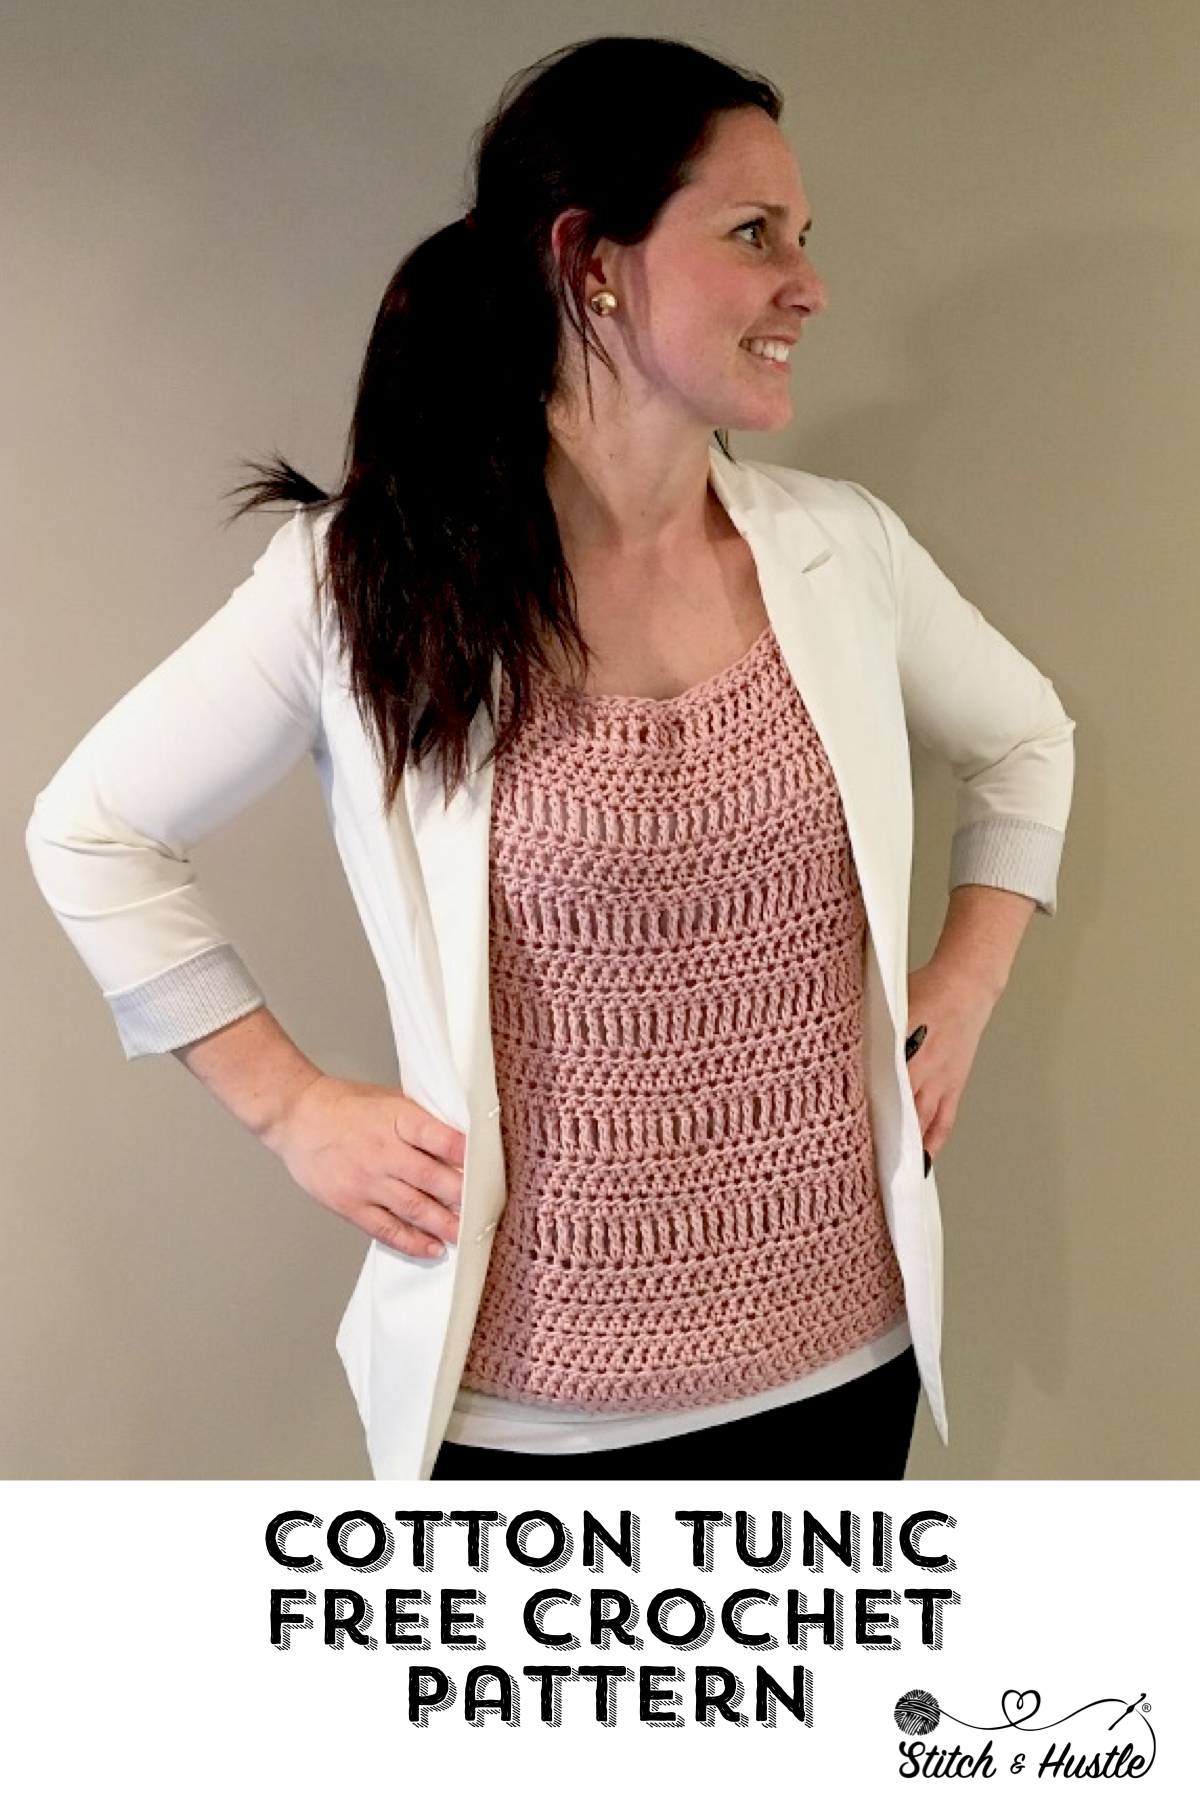 Manchester_Cotton_Tunic_Free_Crochet_Pattern_Stitch_And_Hustle_813.png